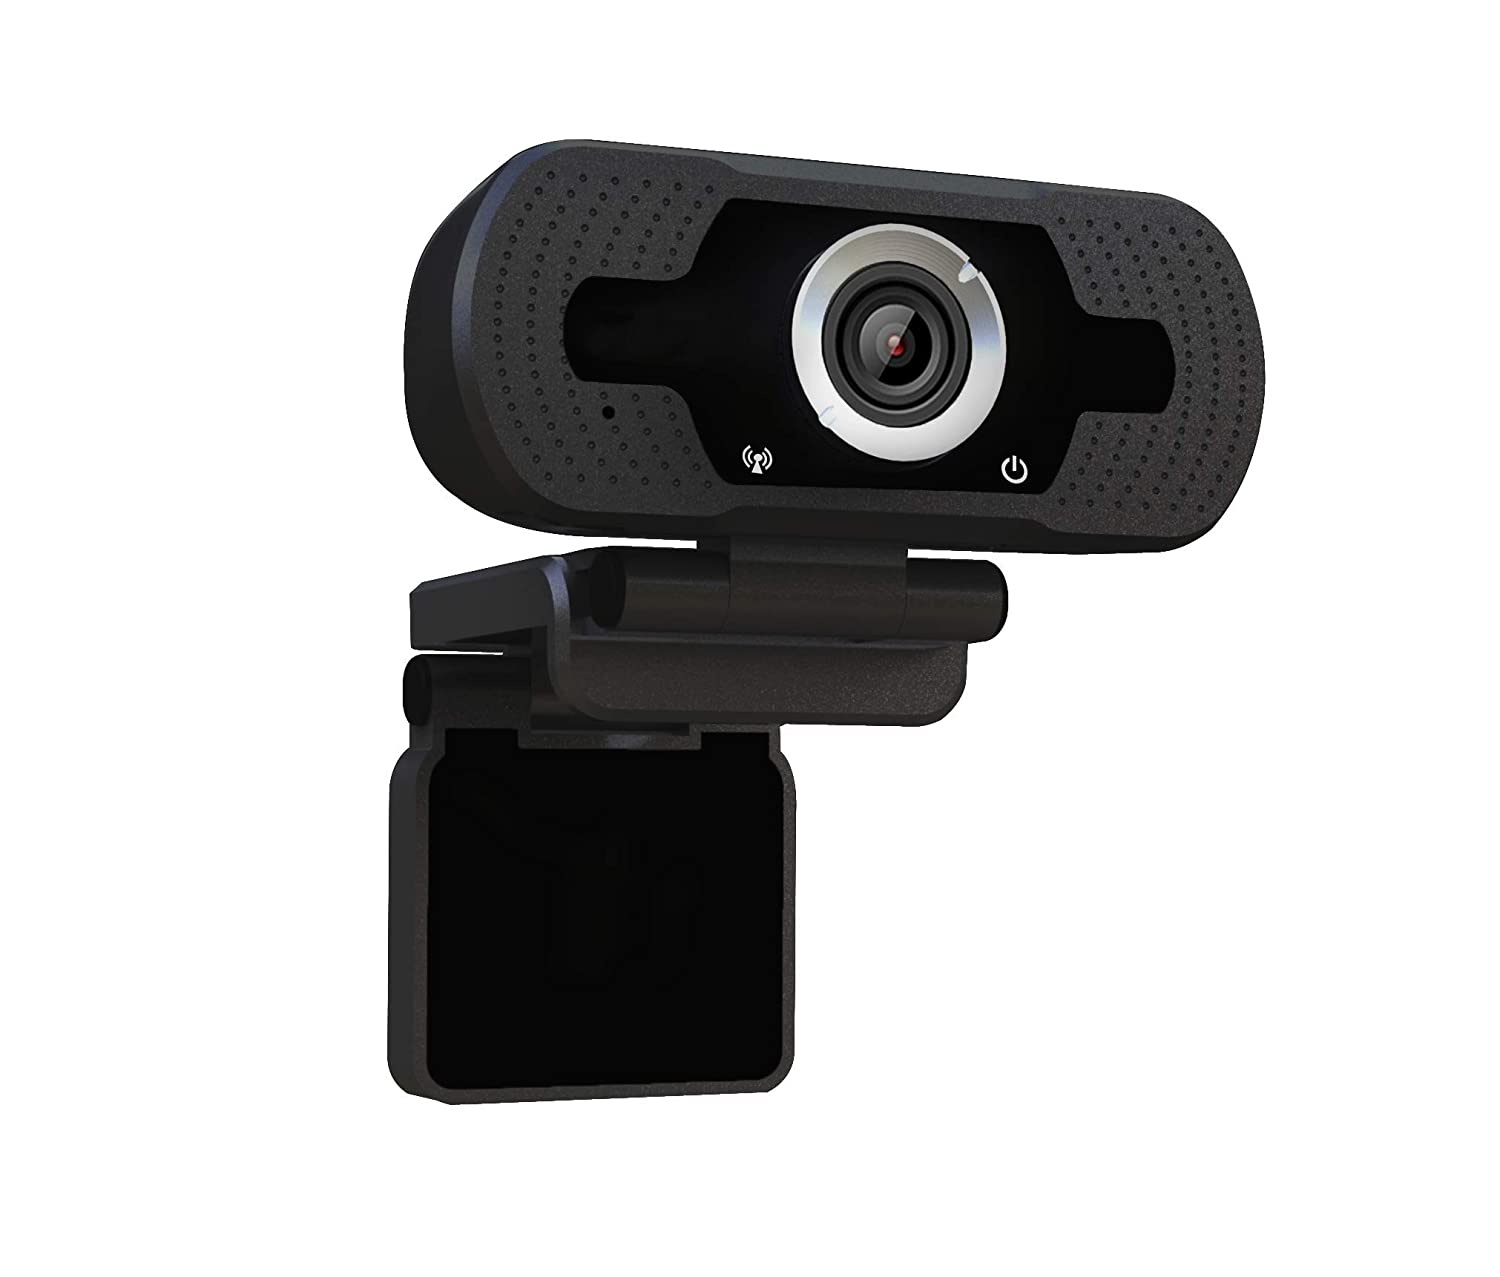 Dericam 720P HD Webcam Live Streaming, Webcam USB pour Ordinateur de Bureau et Portable, Mini camé ra vidé o Call and Play Plug-and-Play, Micro inté gré , Clip Rotatif Flexible, W1, Noir Micro intégré